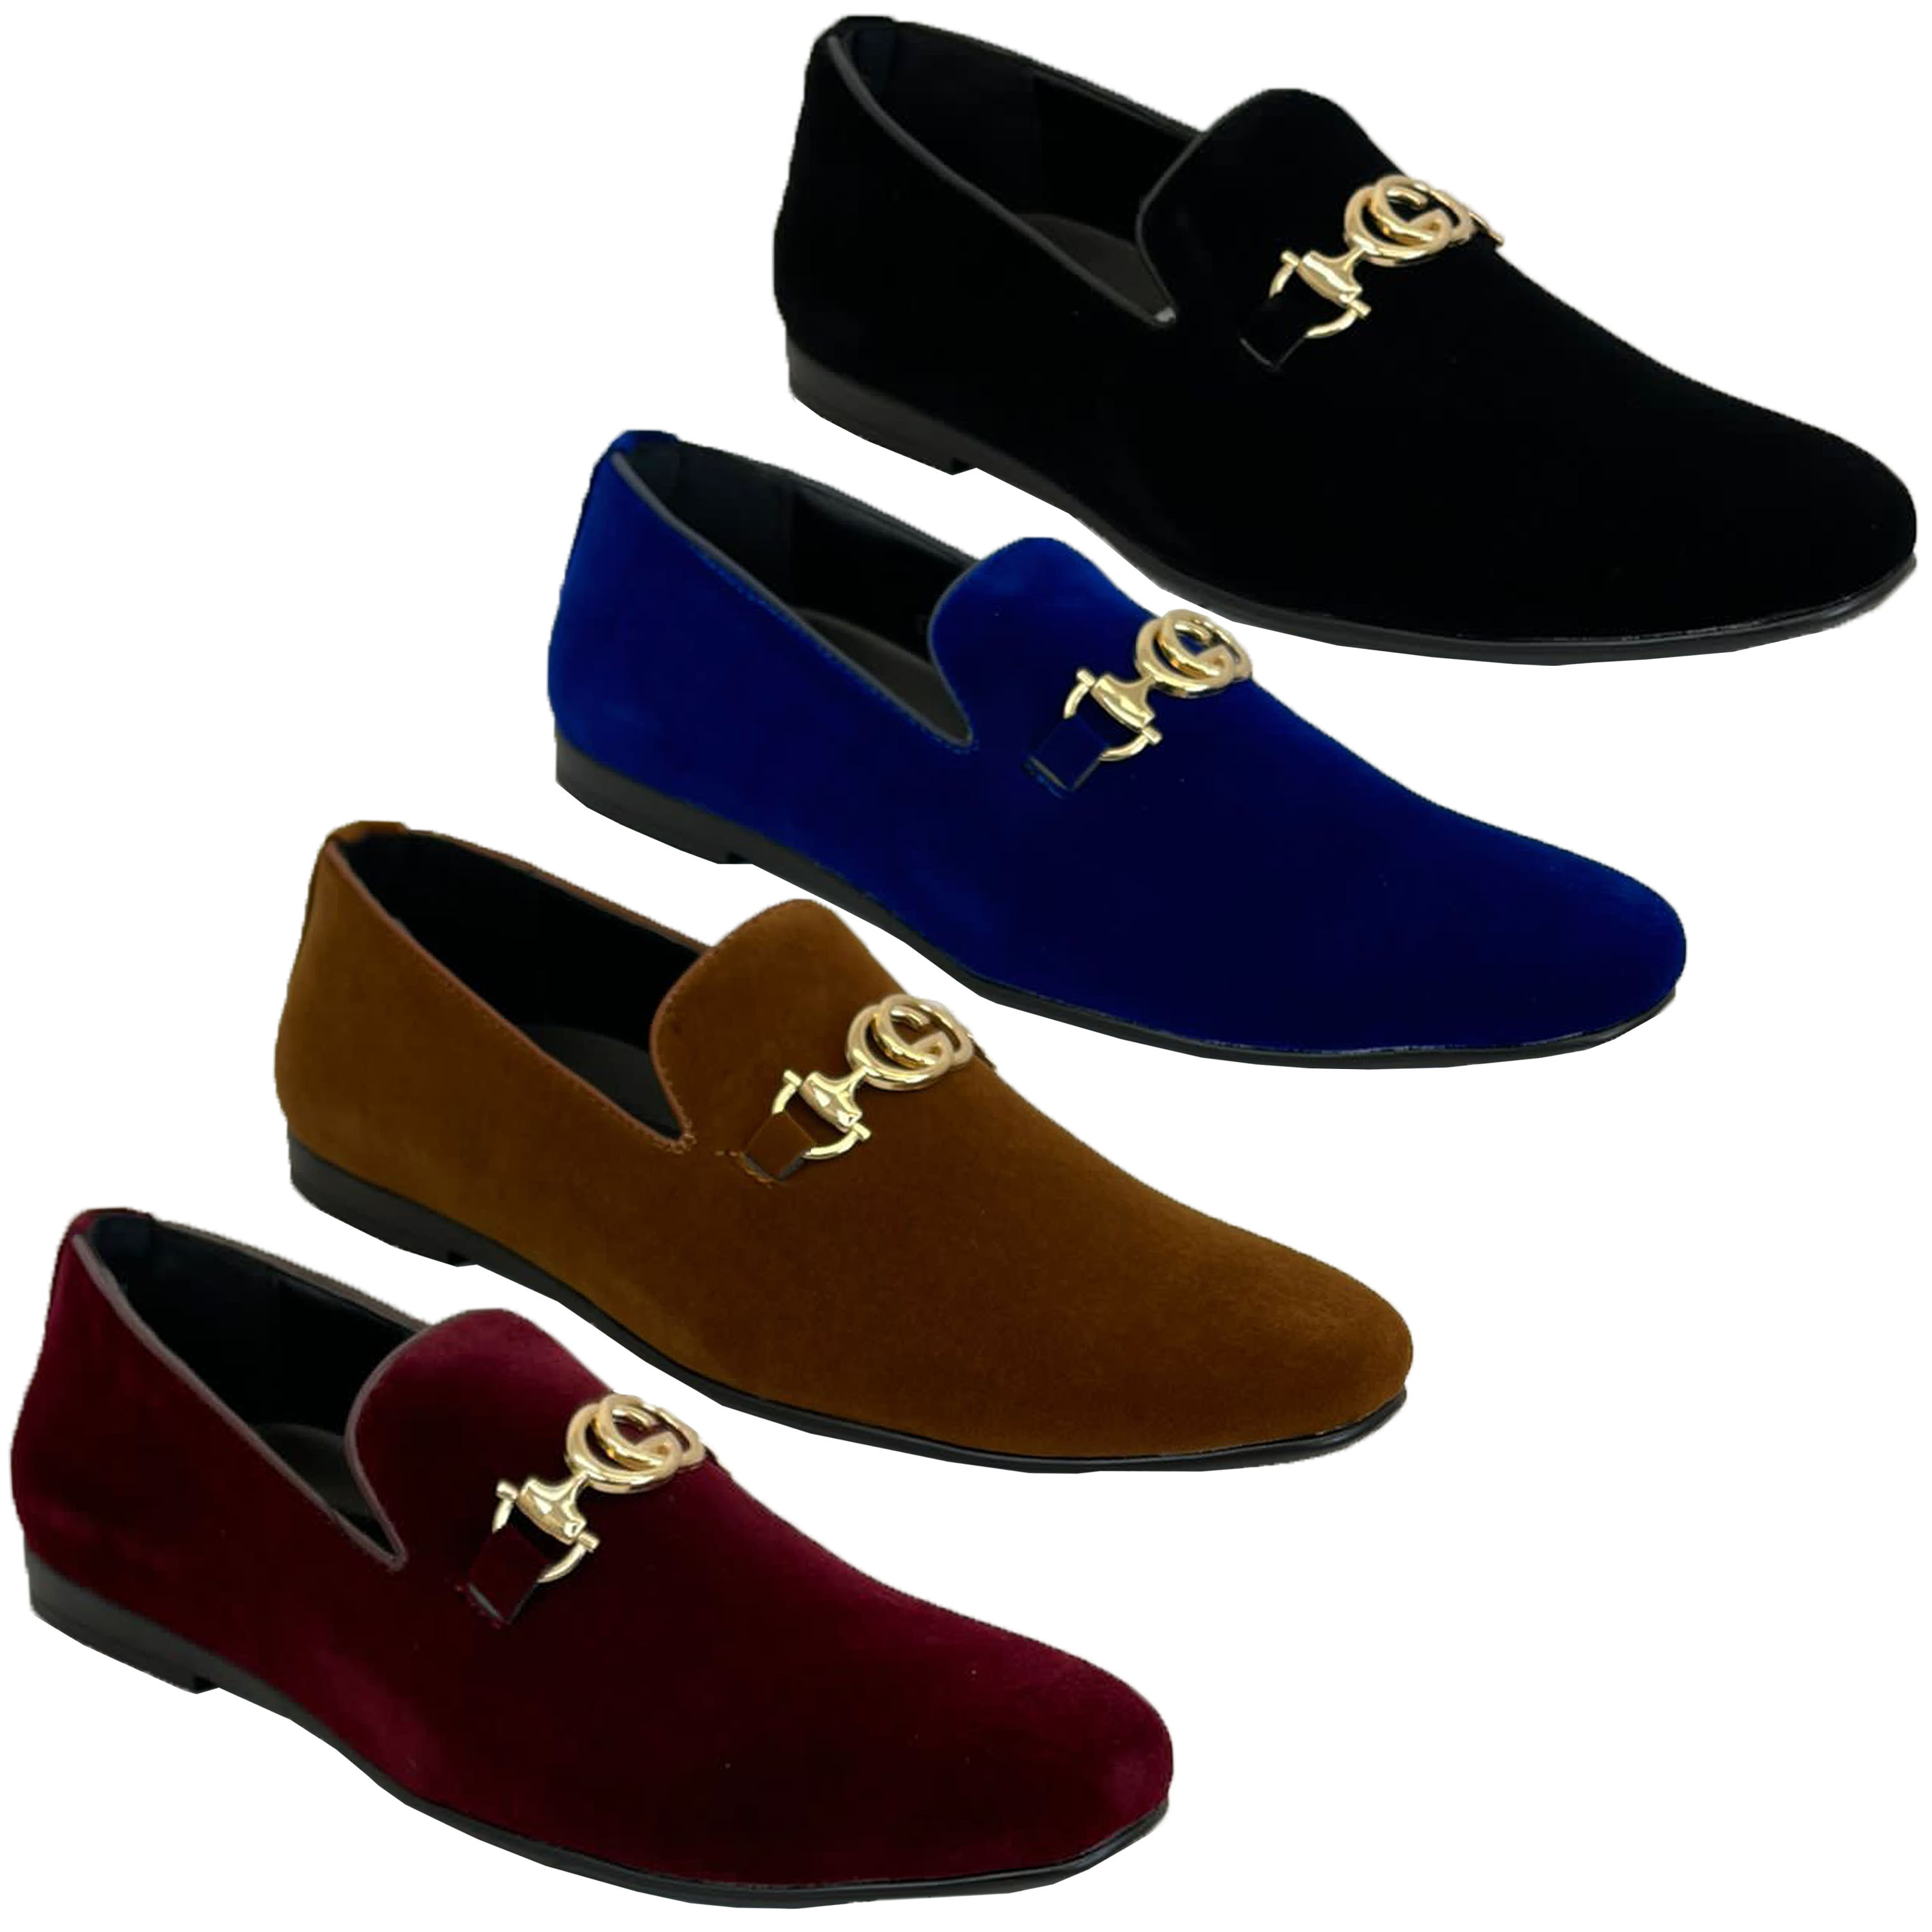 c10ea8ffe34 Mens Slip On Italian Shoes Designer Loafers Suede Look Moccasin ...